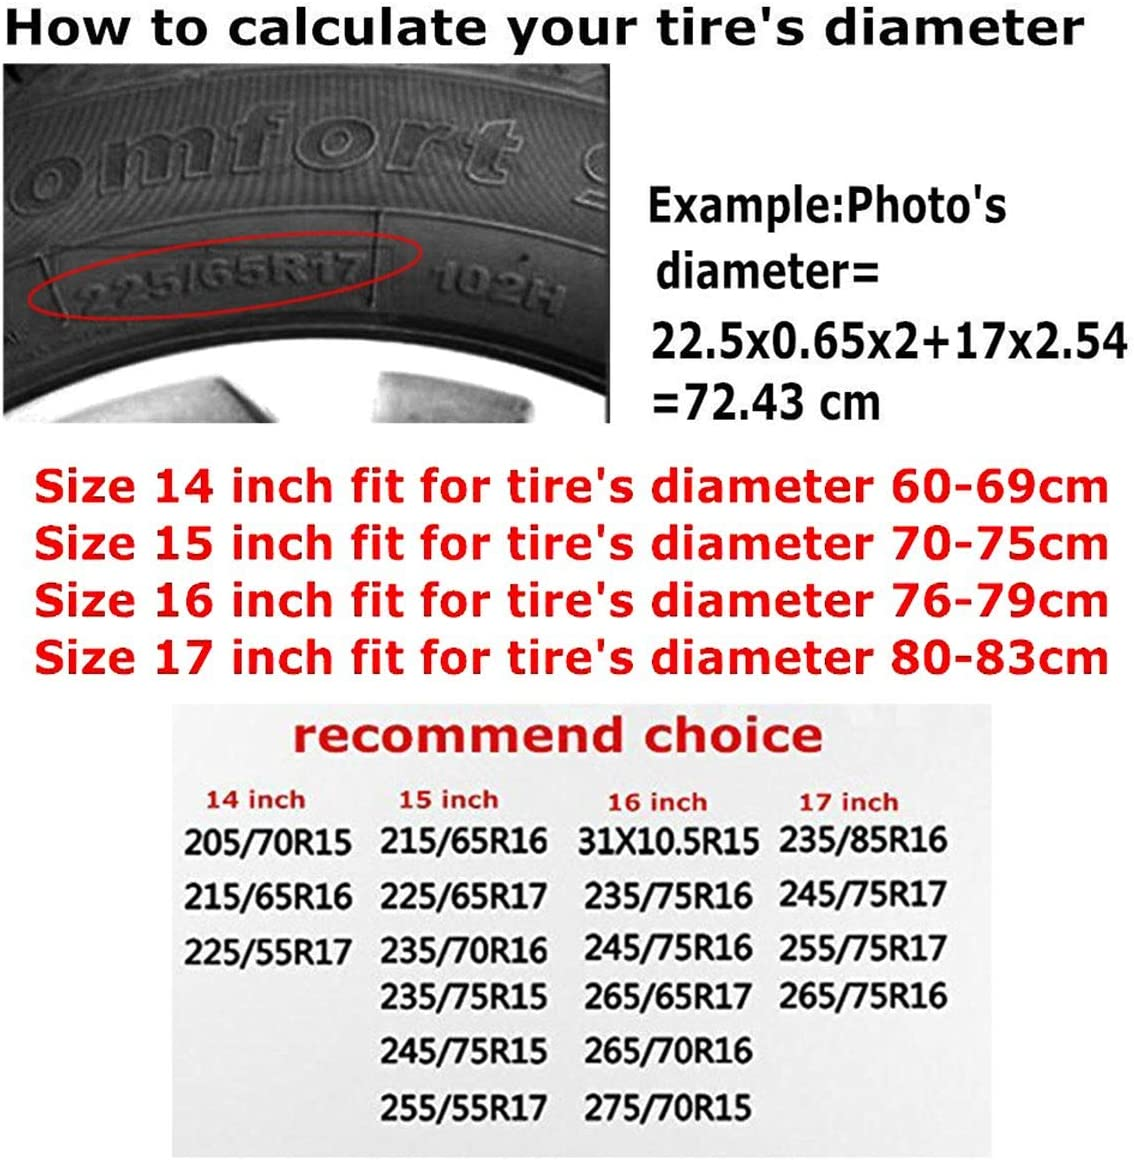 Wheel Covers Sun Protector Waterproof Delerain Cardinal and Blooming Cherry Spare Tire Covers for RV Jeep Trailer SUV Truck and Many Vehicle 15 Inch for Diameter 27-29